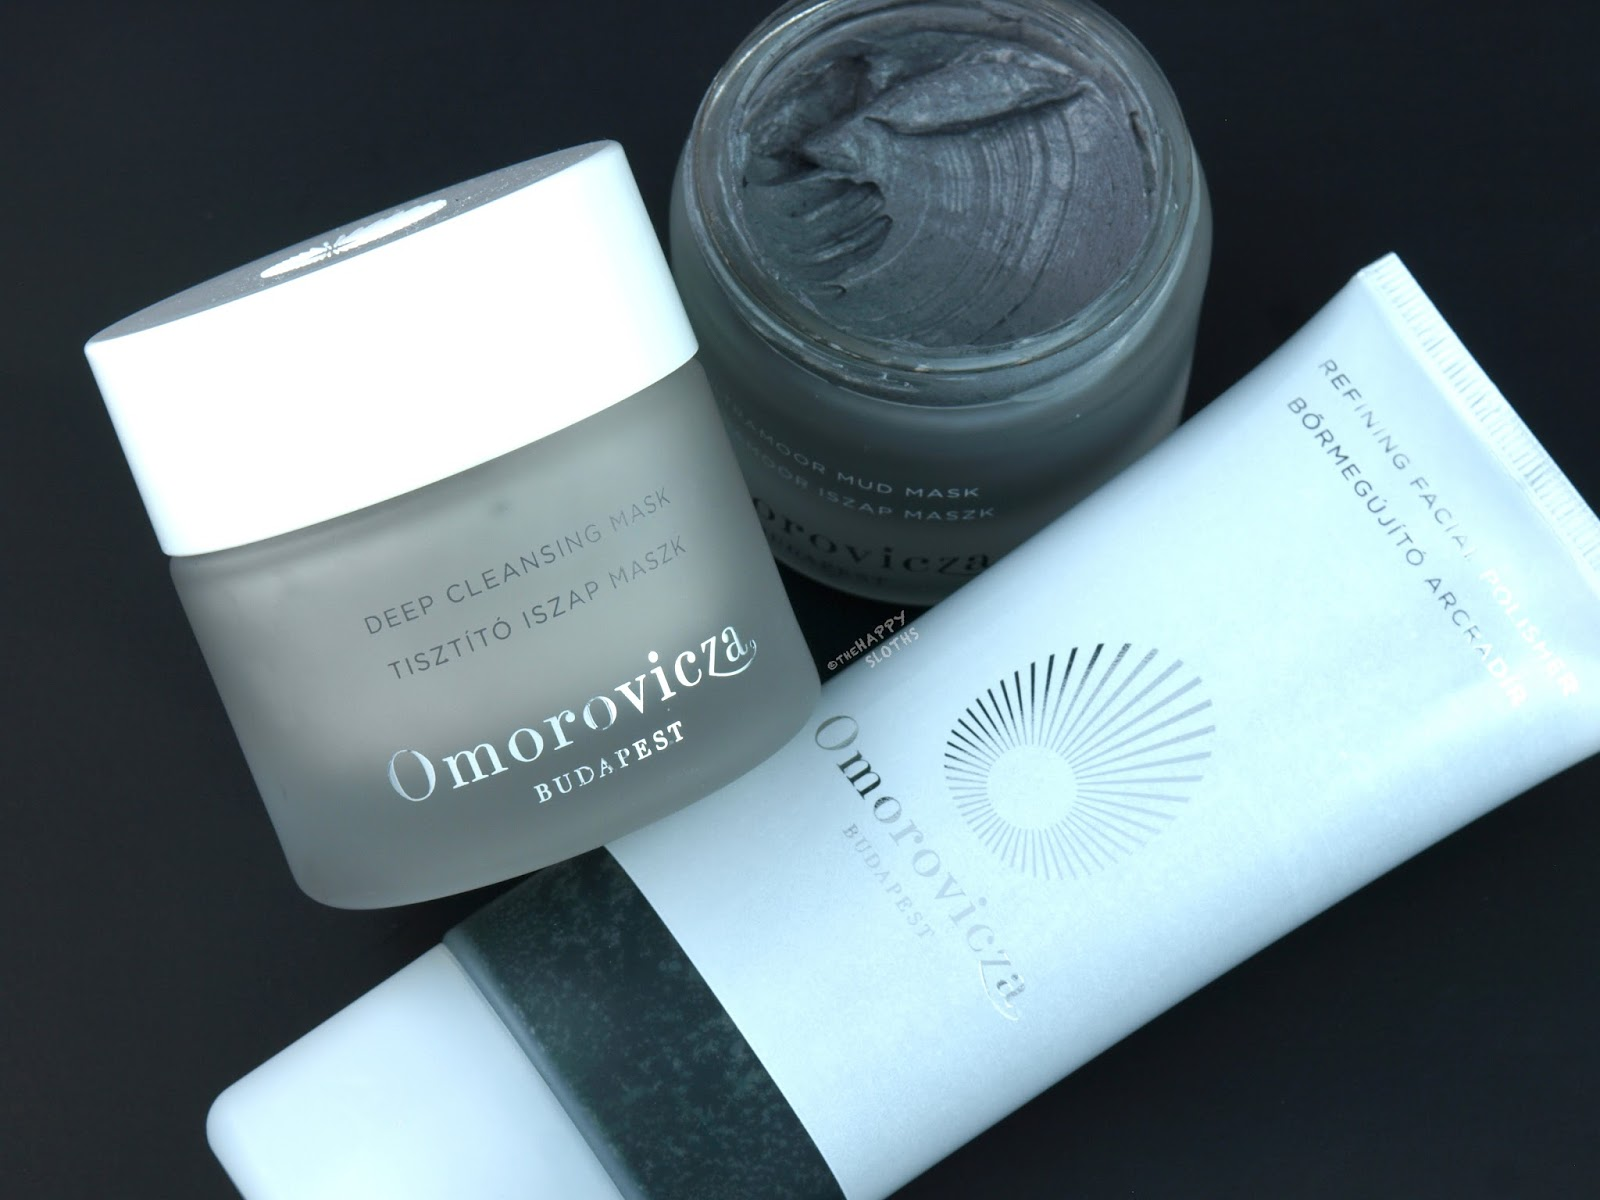 Omorovicza Deep Cleansing Mask, Ultramoor Mud Mask & Refining Facial Polisher: Review